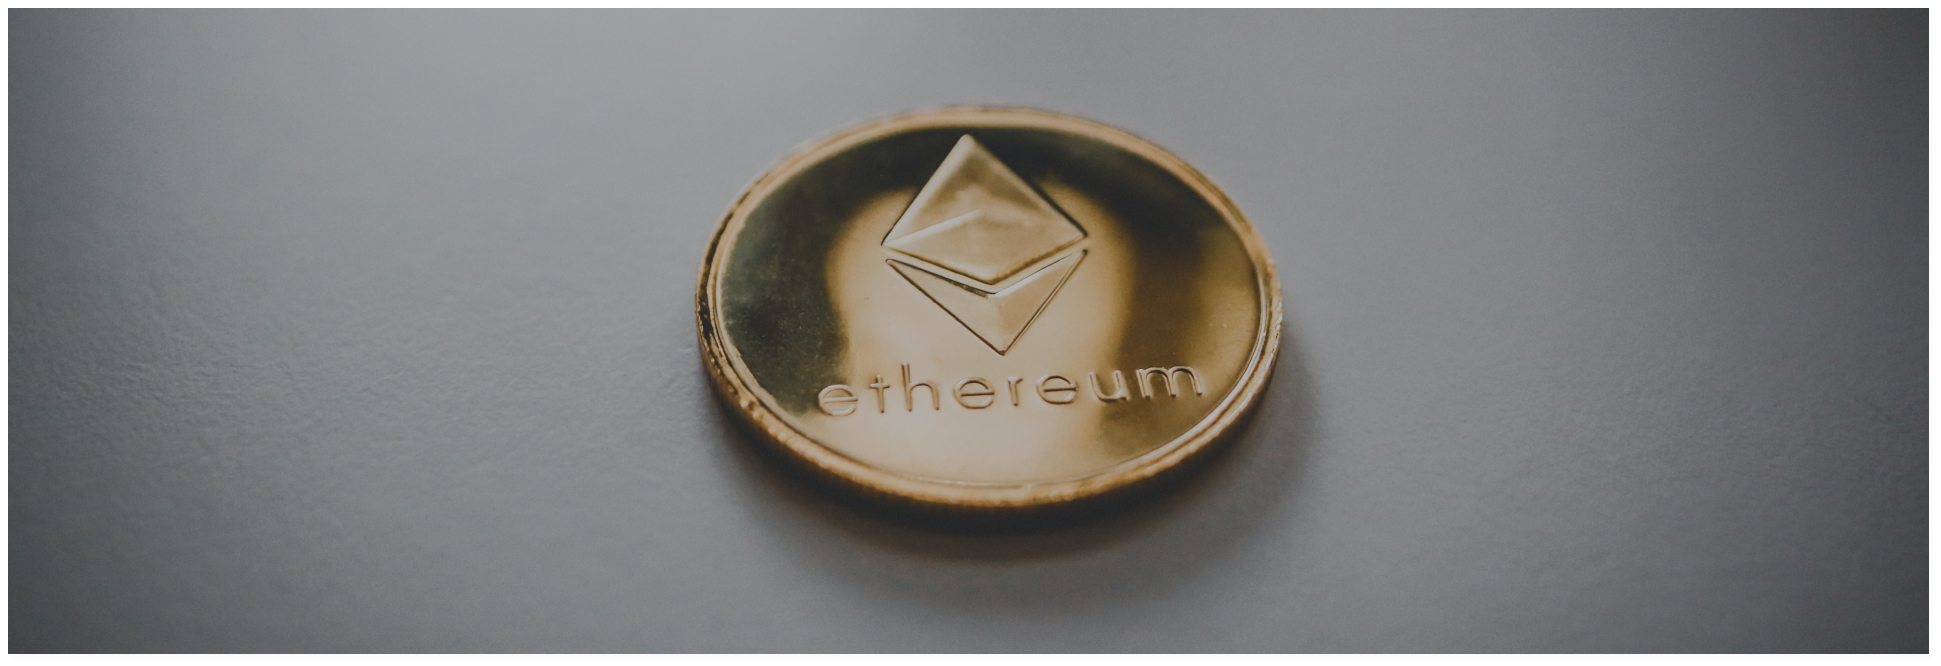 The Ultimate Guide to Ethereum 2.0 – All You Need To Know